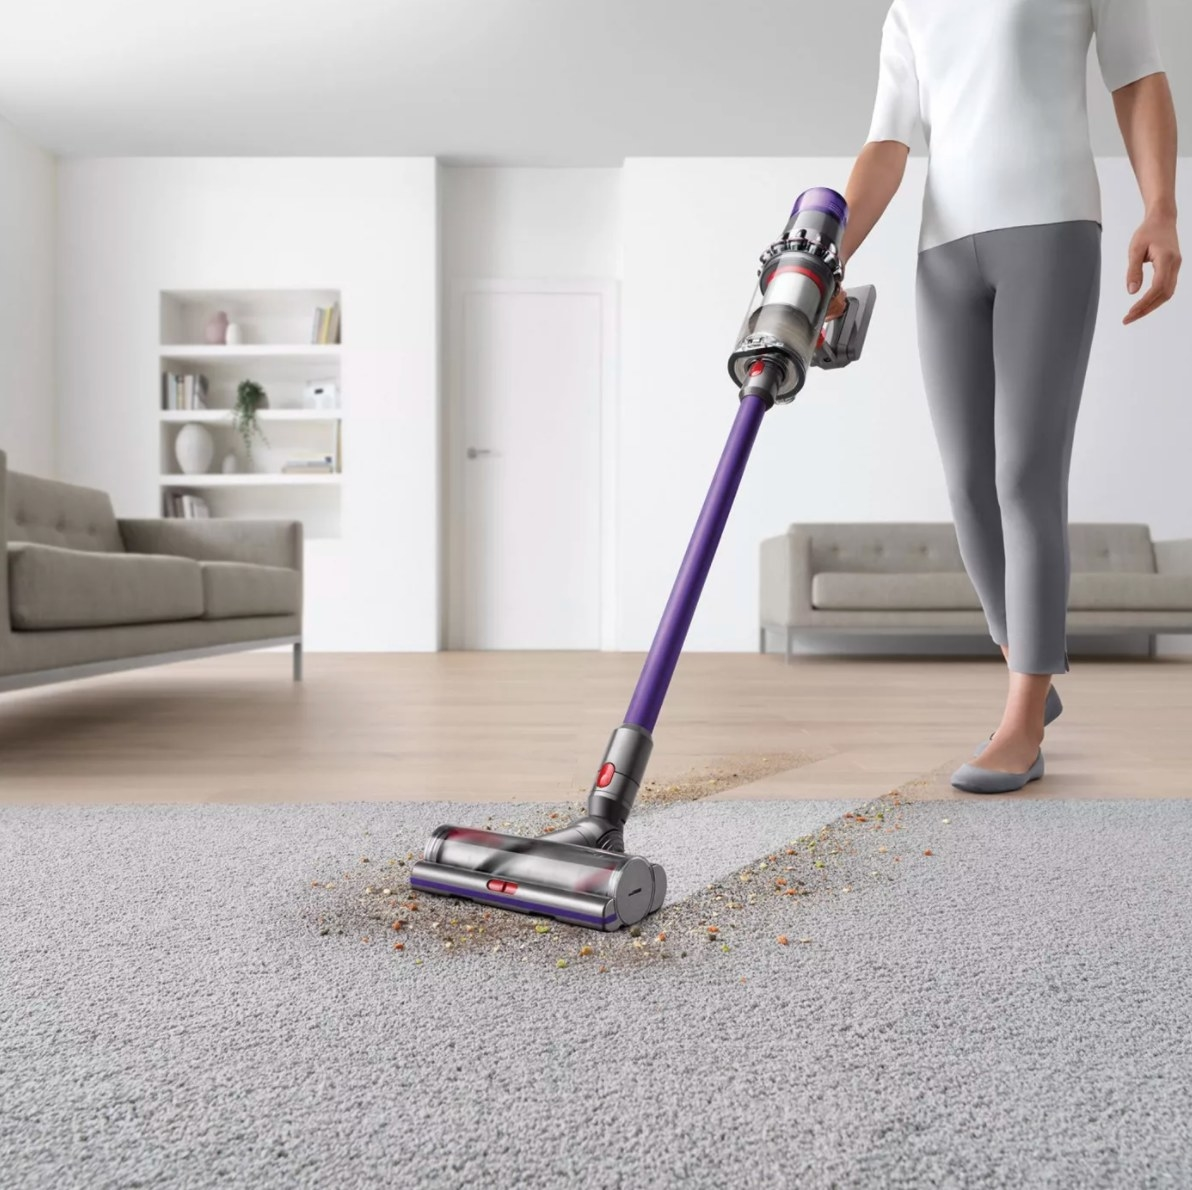 The cordless stick vacuum in purple being used by a model on a dirty carpet